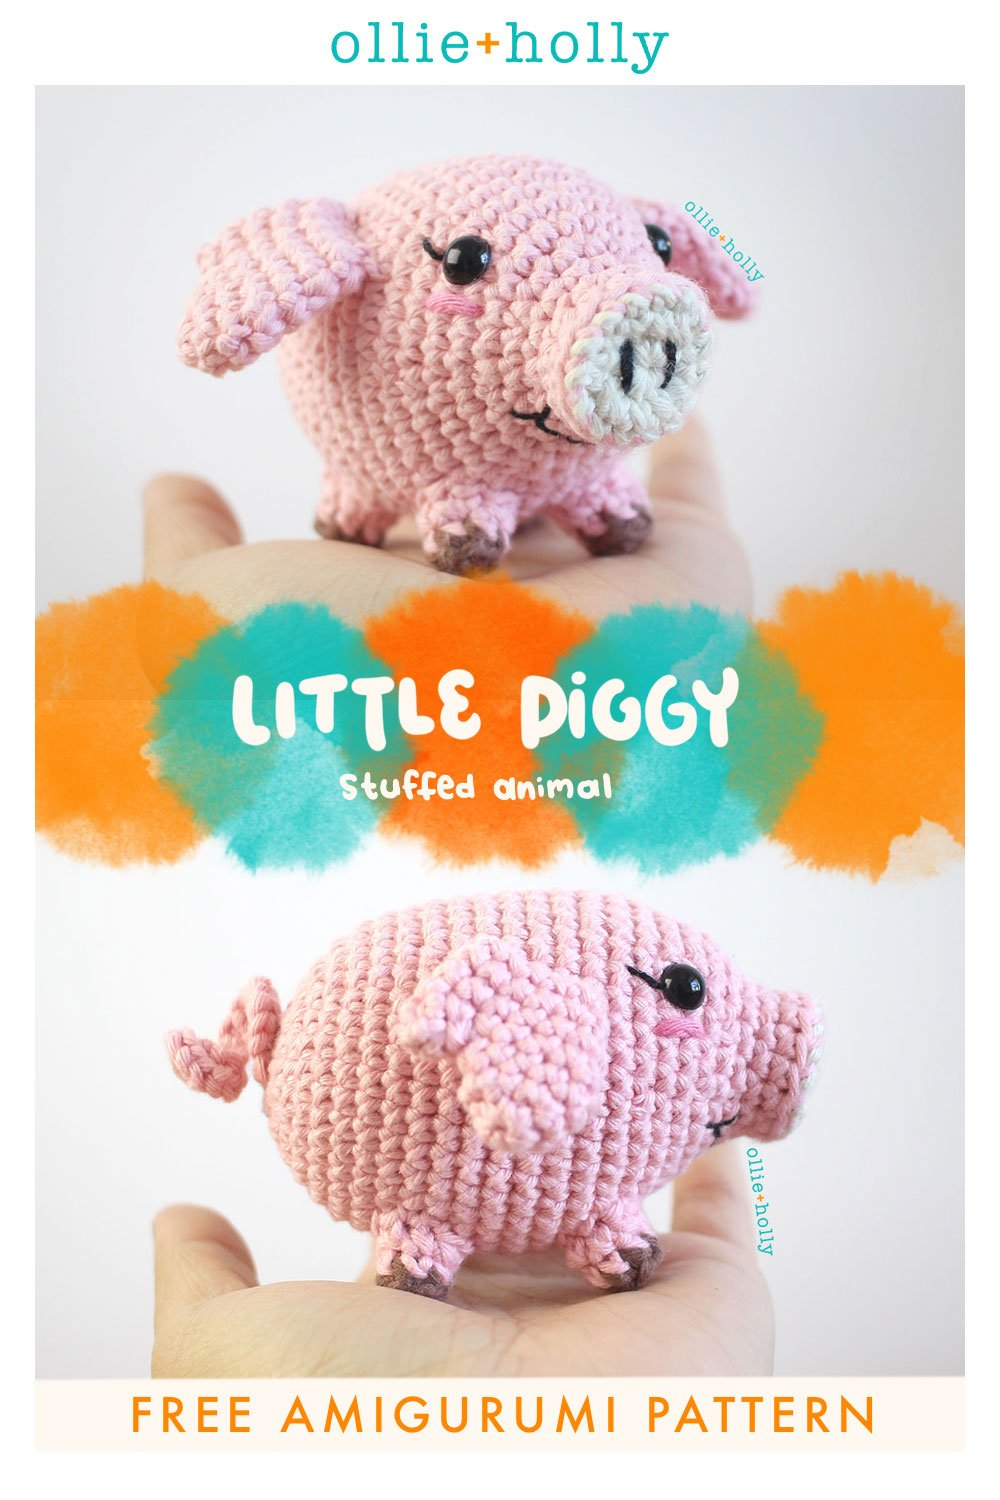 Free Little Piggy Stuffed Animal Amigurumi Crochet Pattern